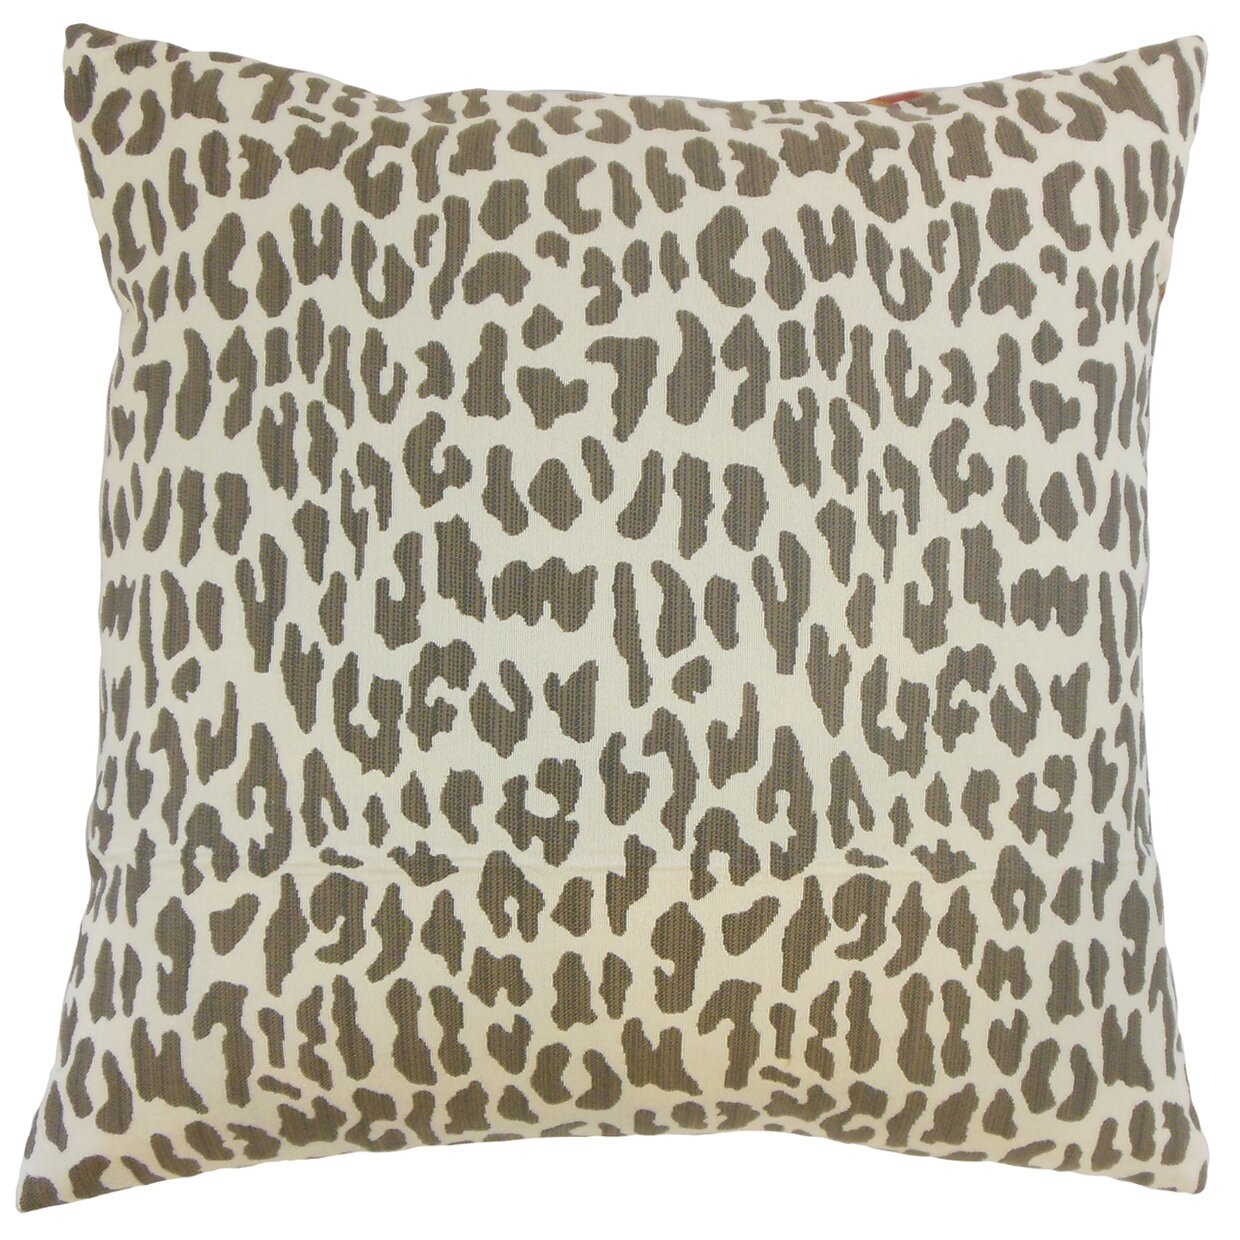 Animal Print Sofa Pillows : The Pillow Collection Ilandere Animal Print Throw Pillow & Reviews Wayfair